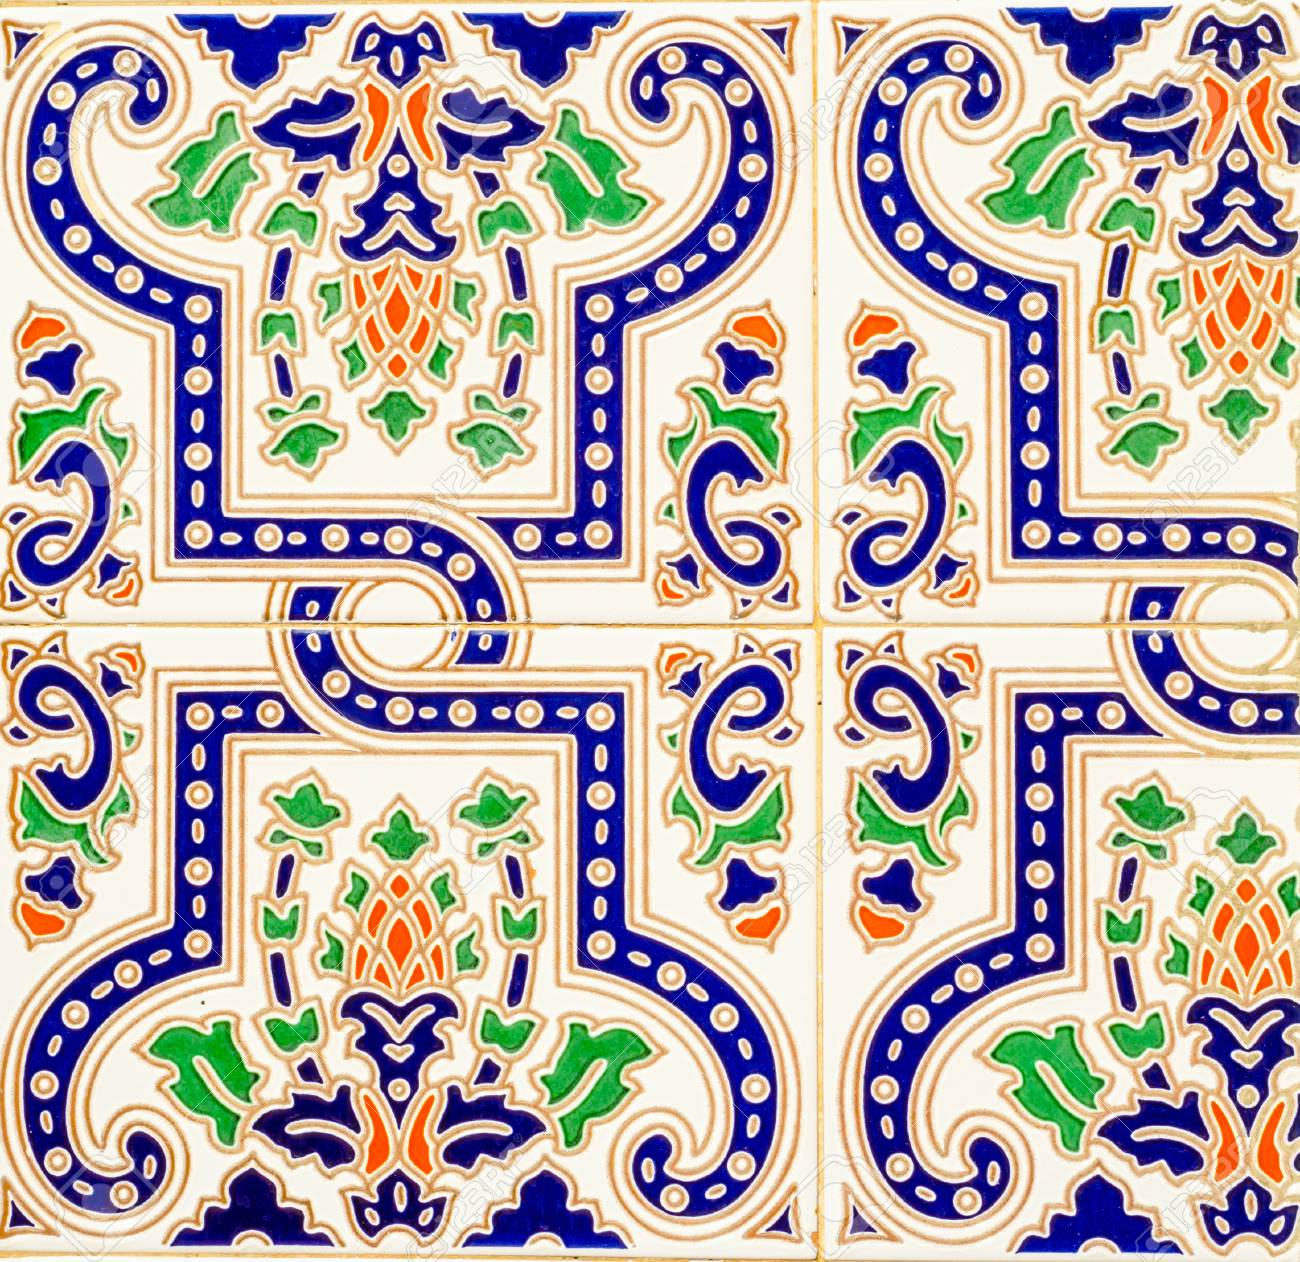 Traditional Ornamental Spanish Decorative Tiles, Original Ceramic.. within Spanish Ornamental Wall Decor (Image 21 of 30)